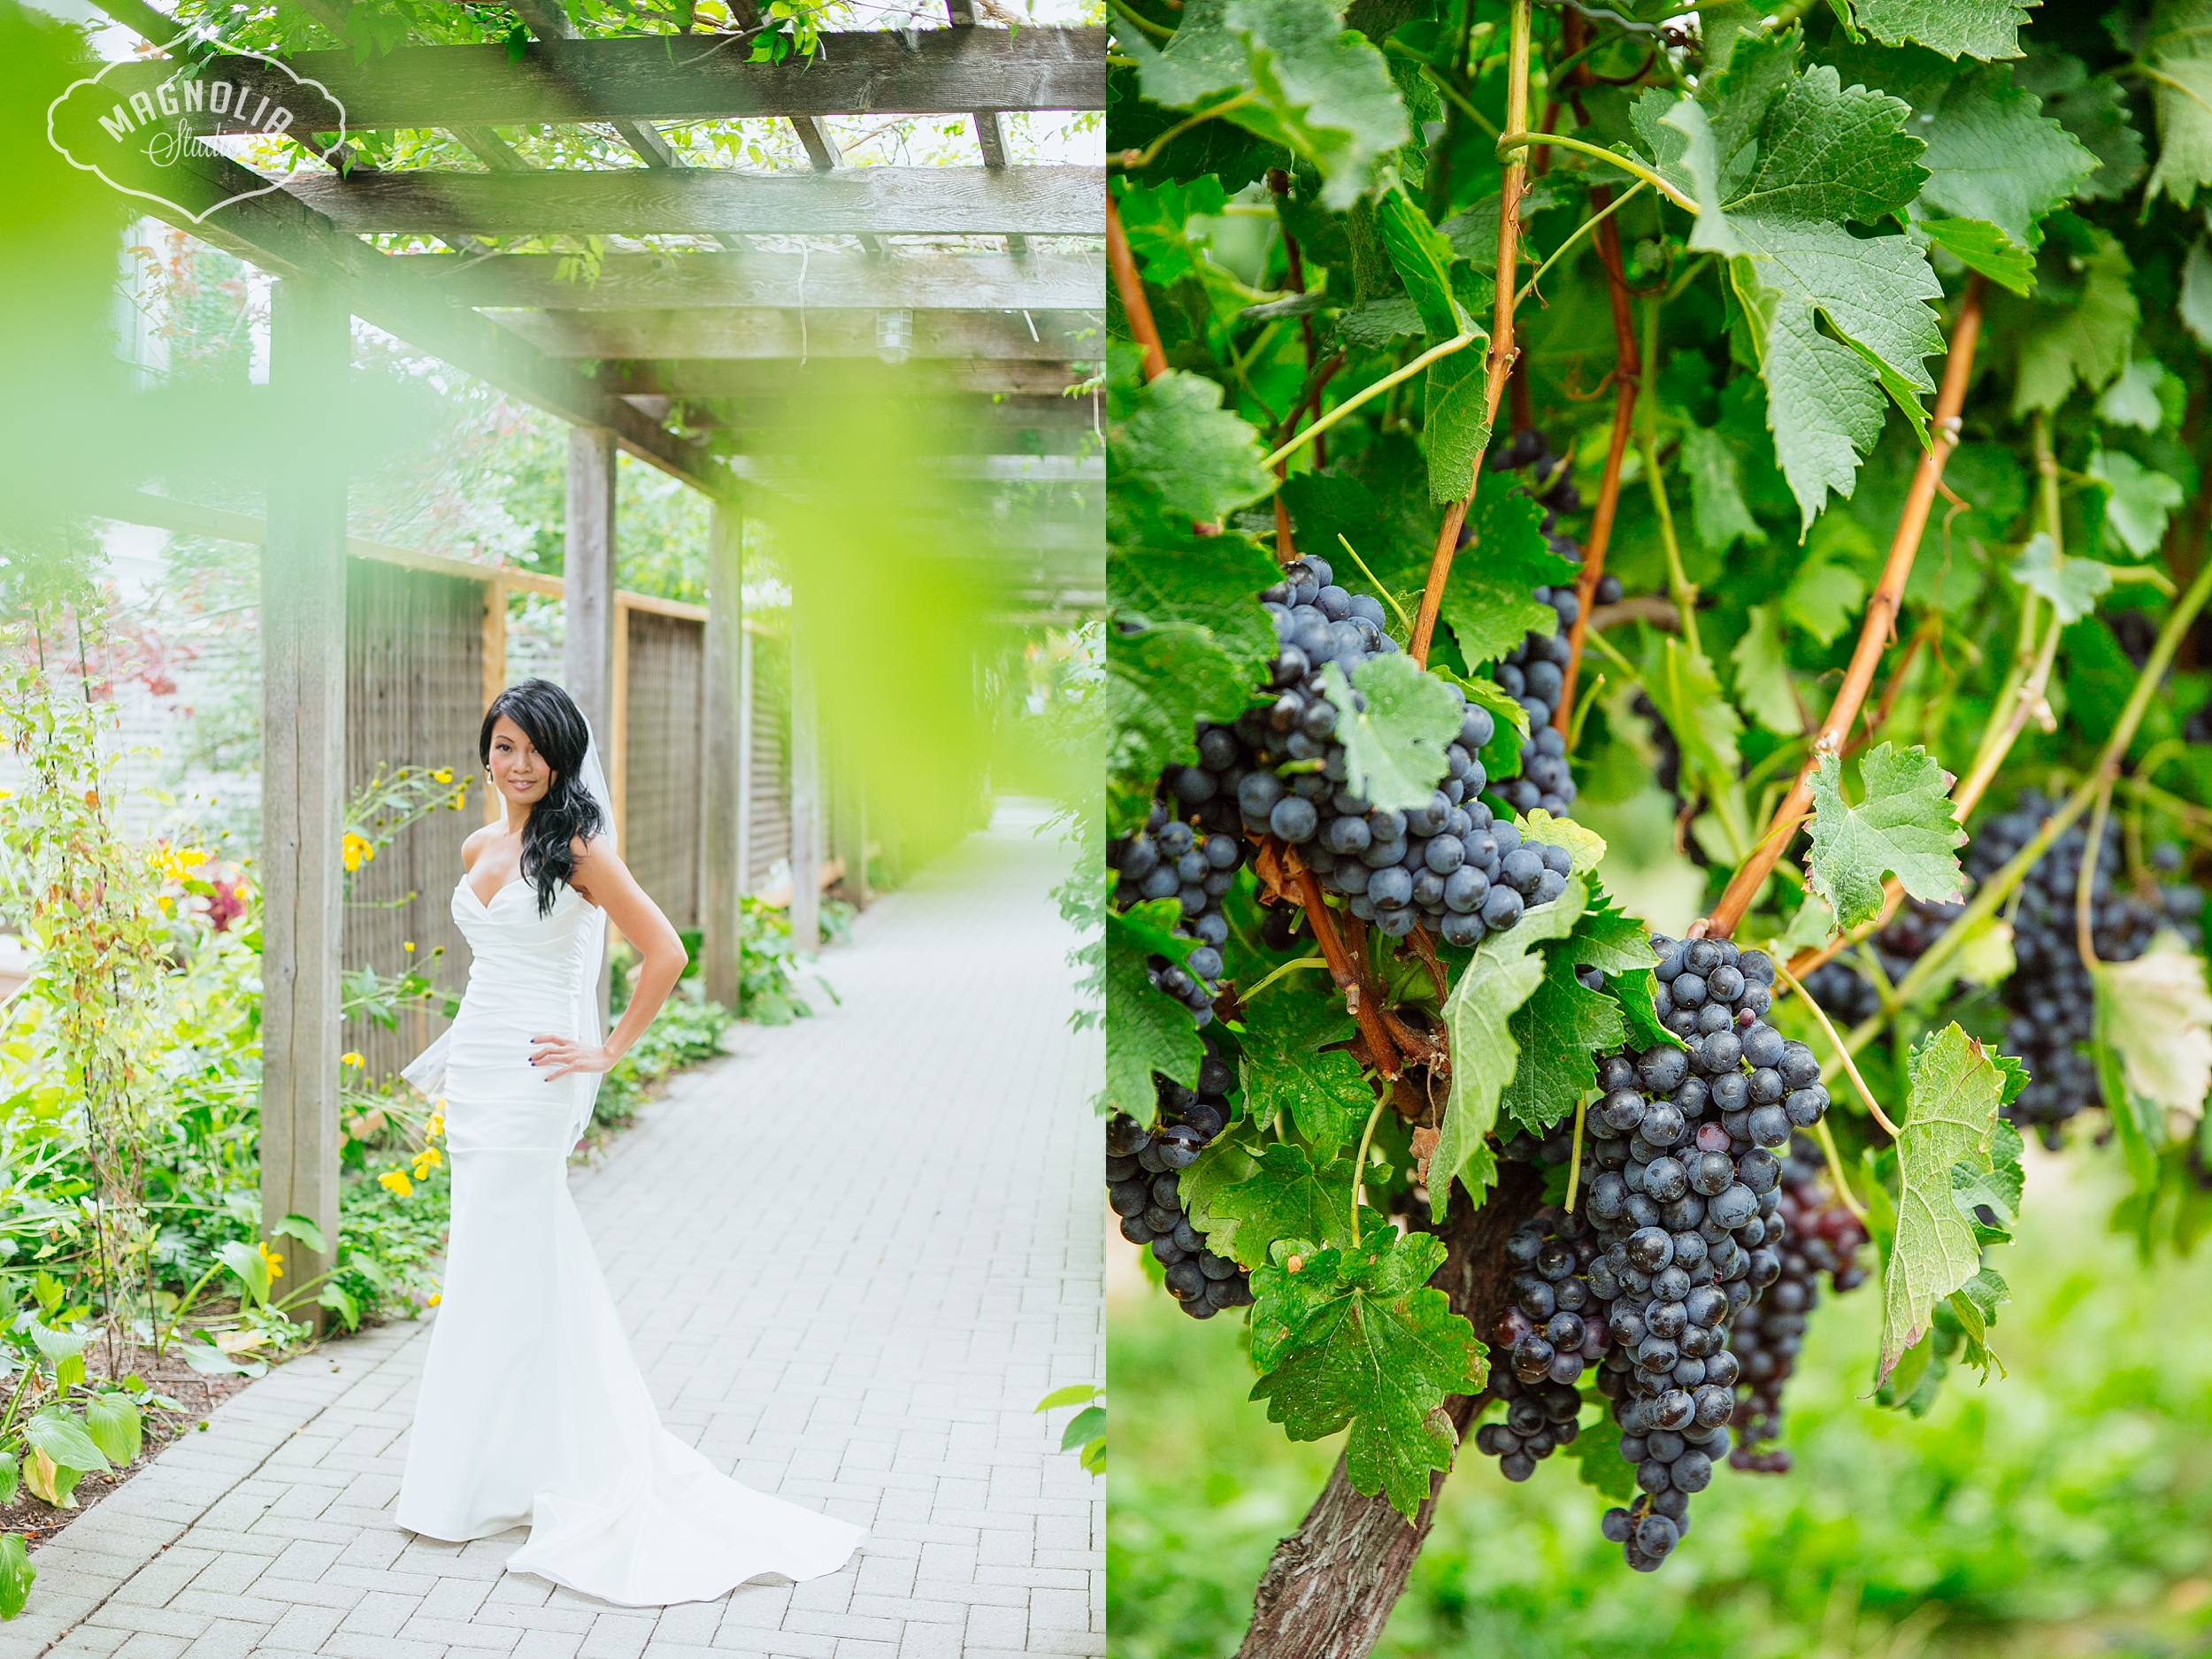 Cavesprings_Winery_Wedding_NOTL-0019